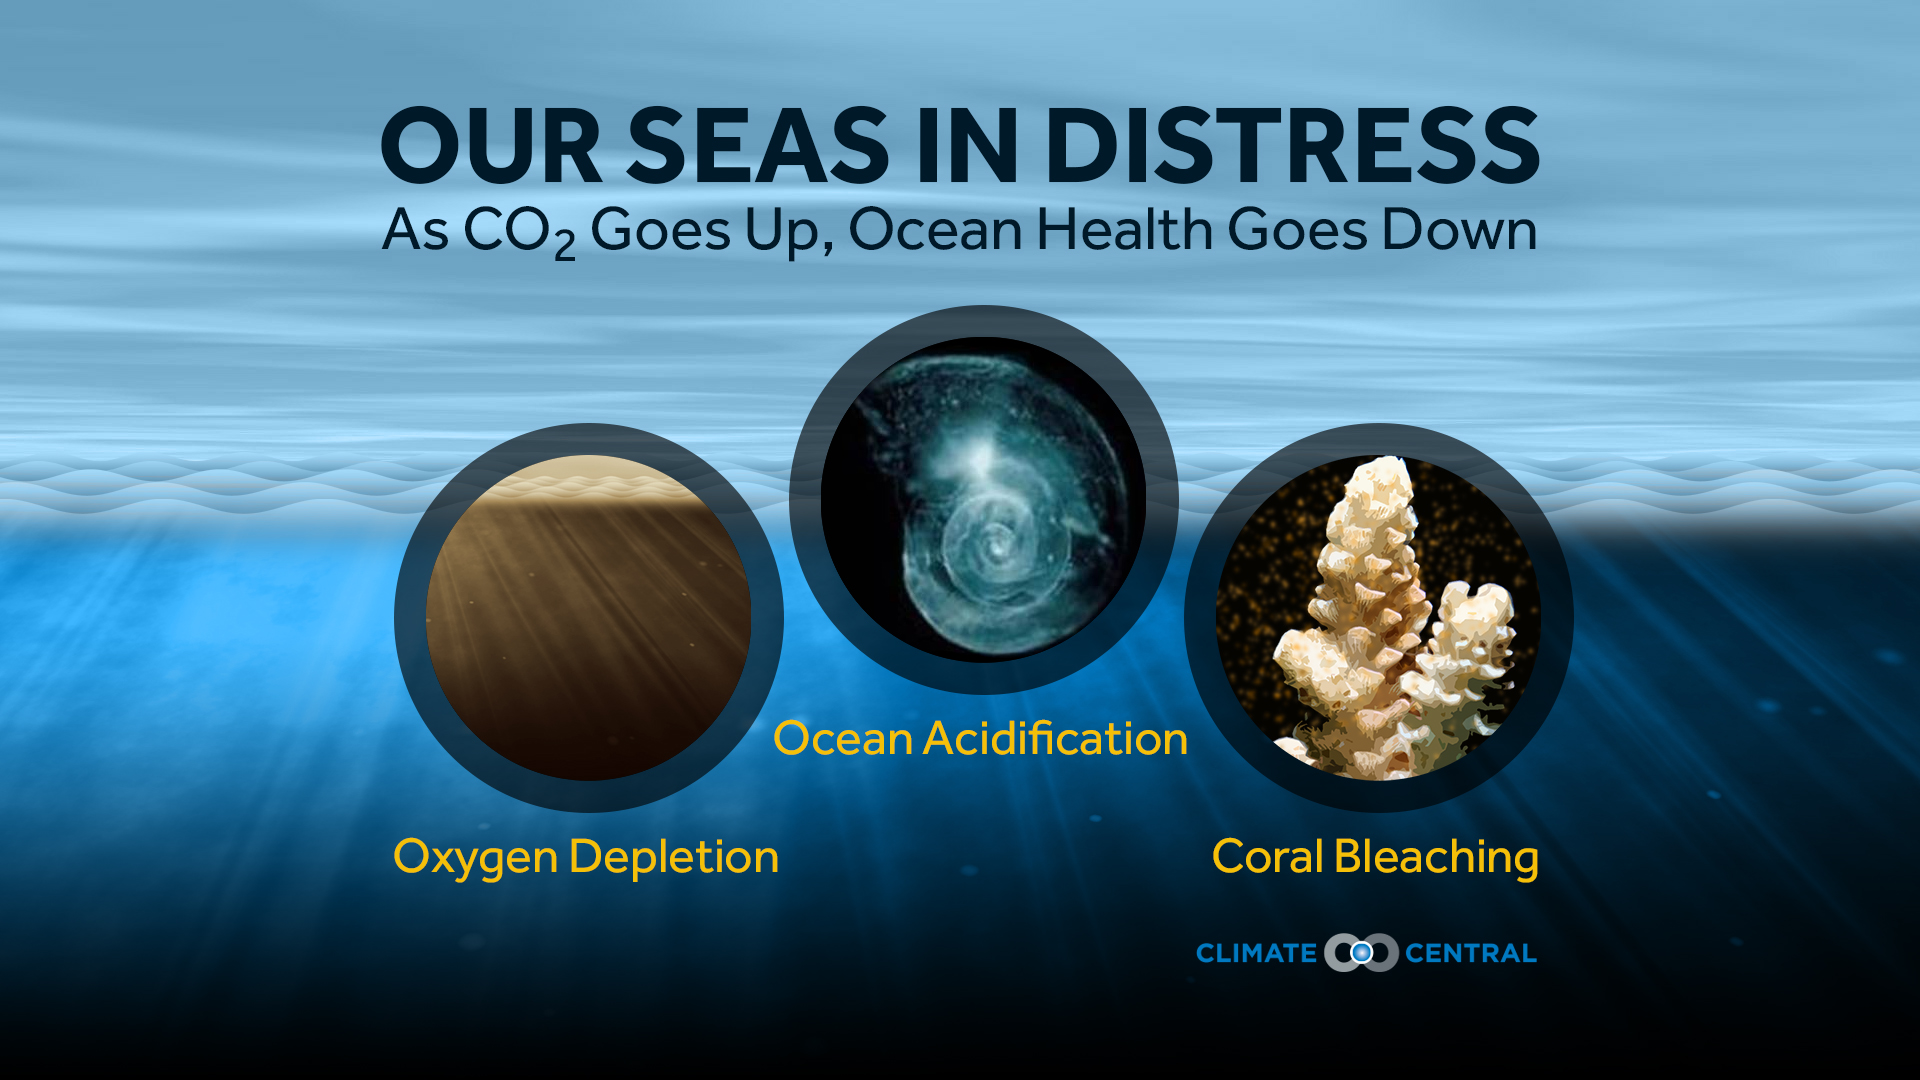 As CO2 Goes Up, Ocean Health Goes Down